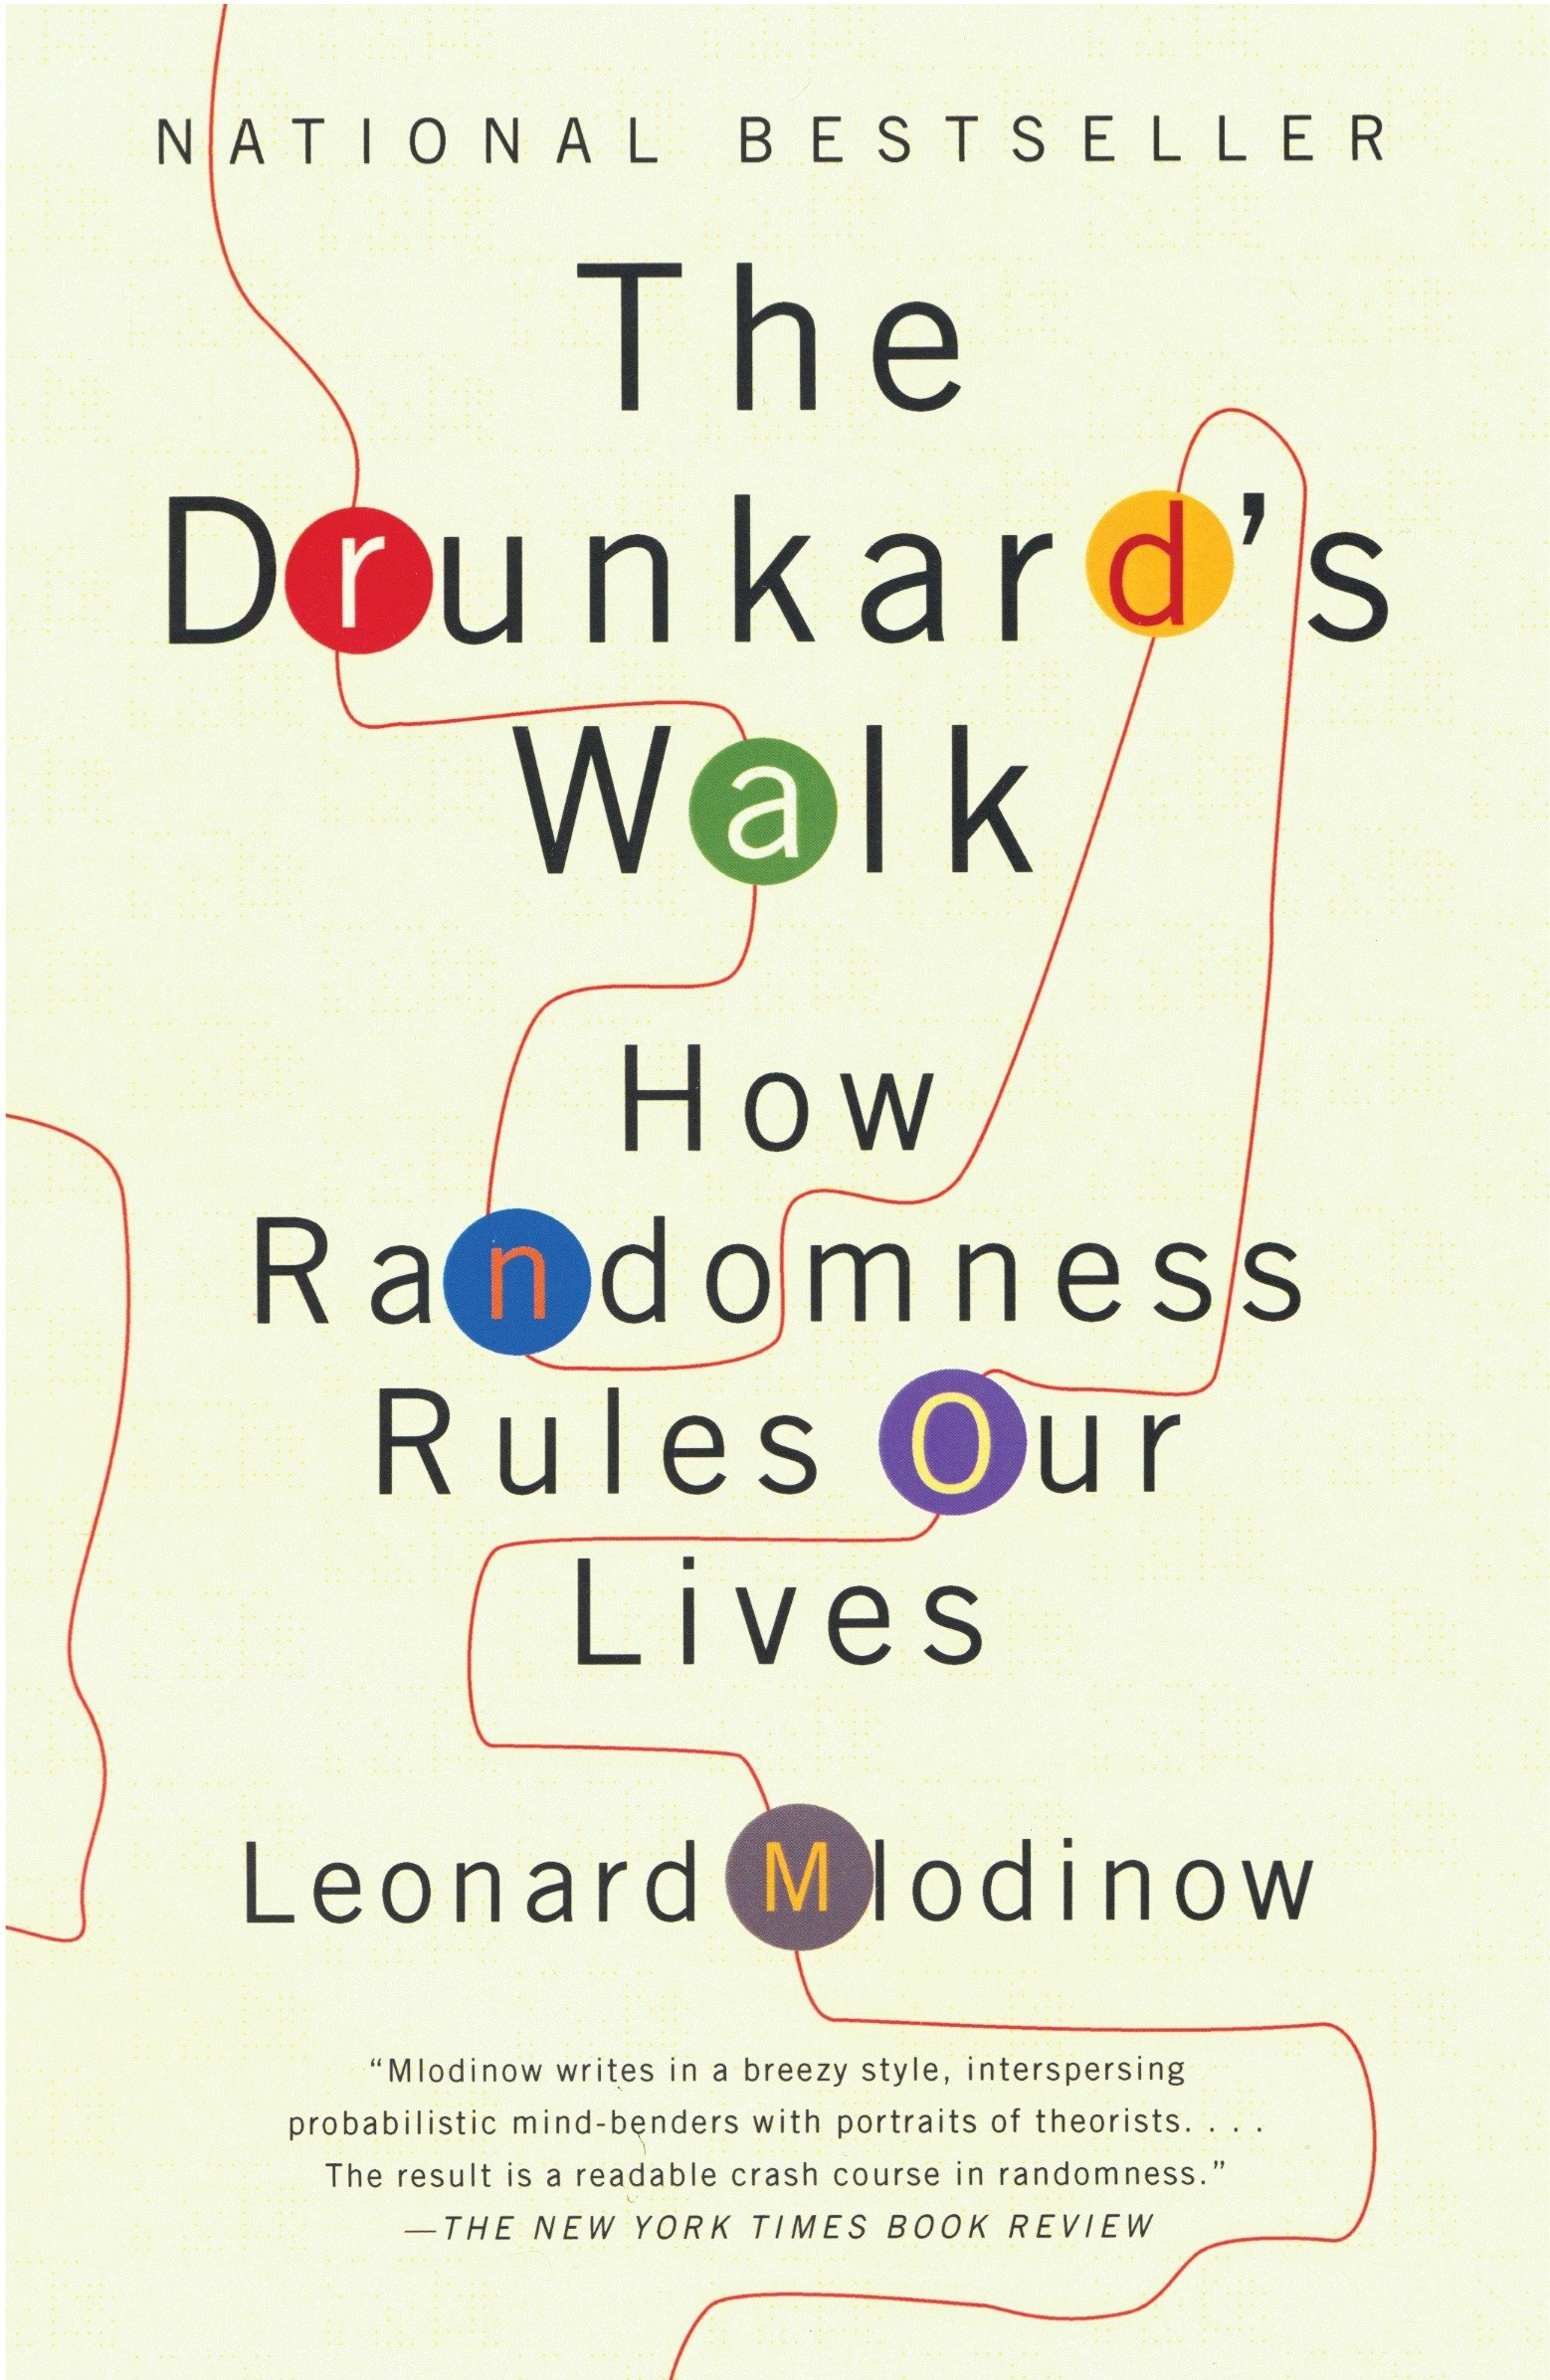 Download The Drunkards Walk How Randomness Rules Our Lives By Leonard Mlodinow